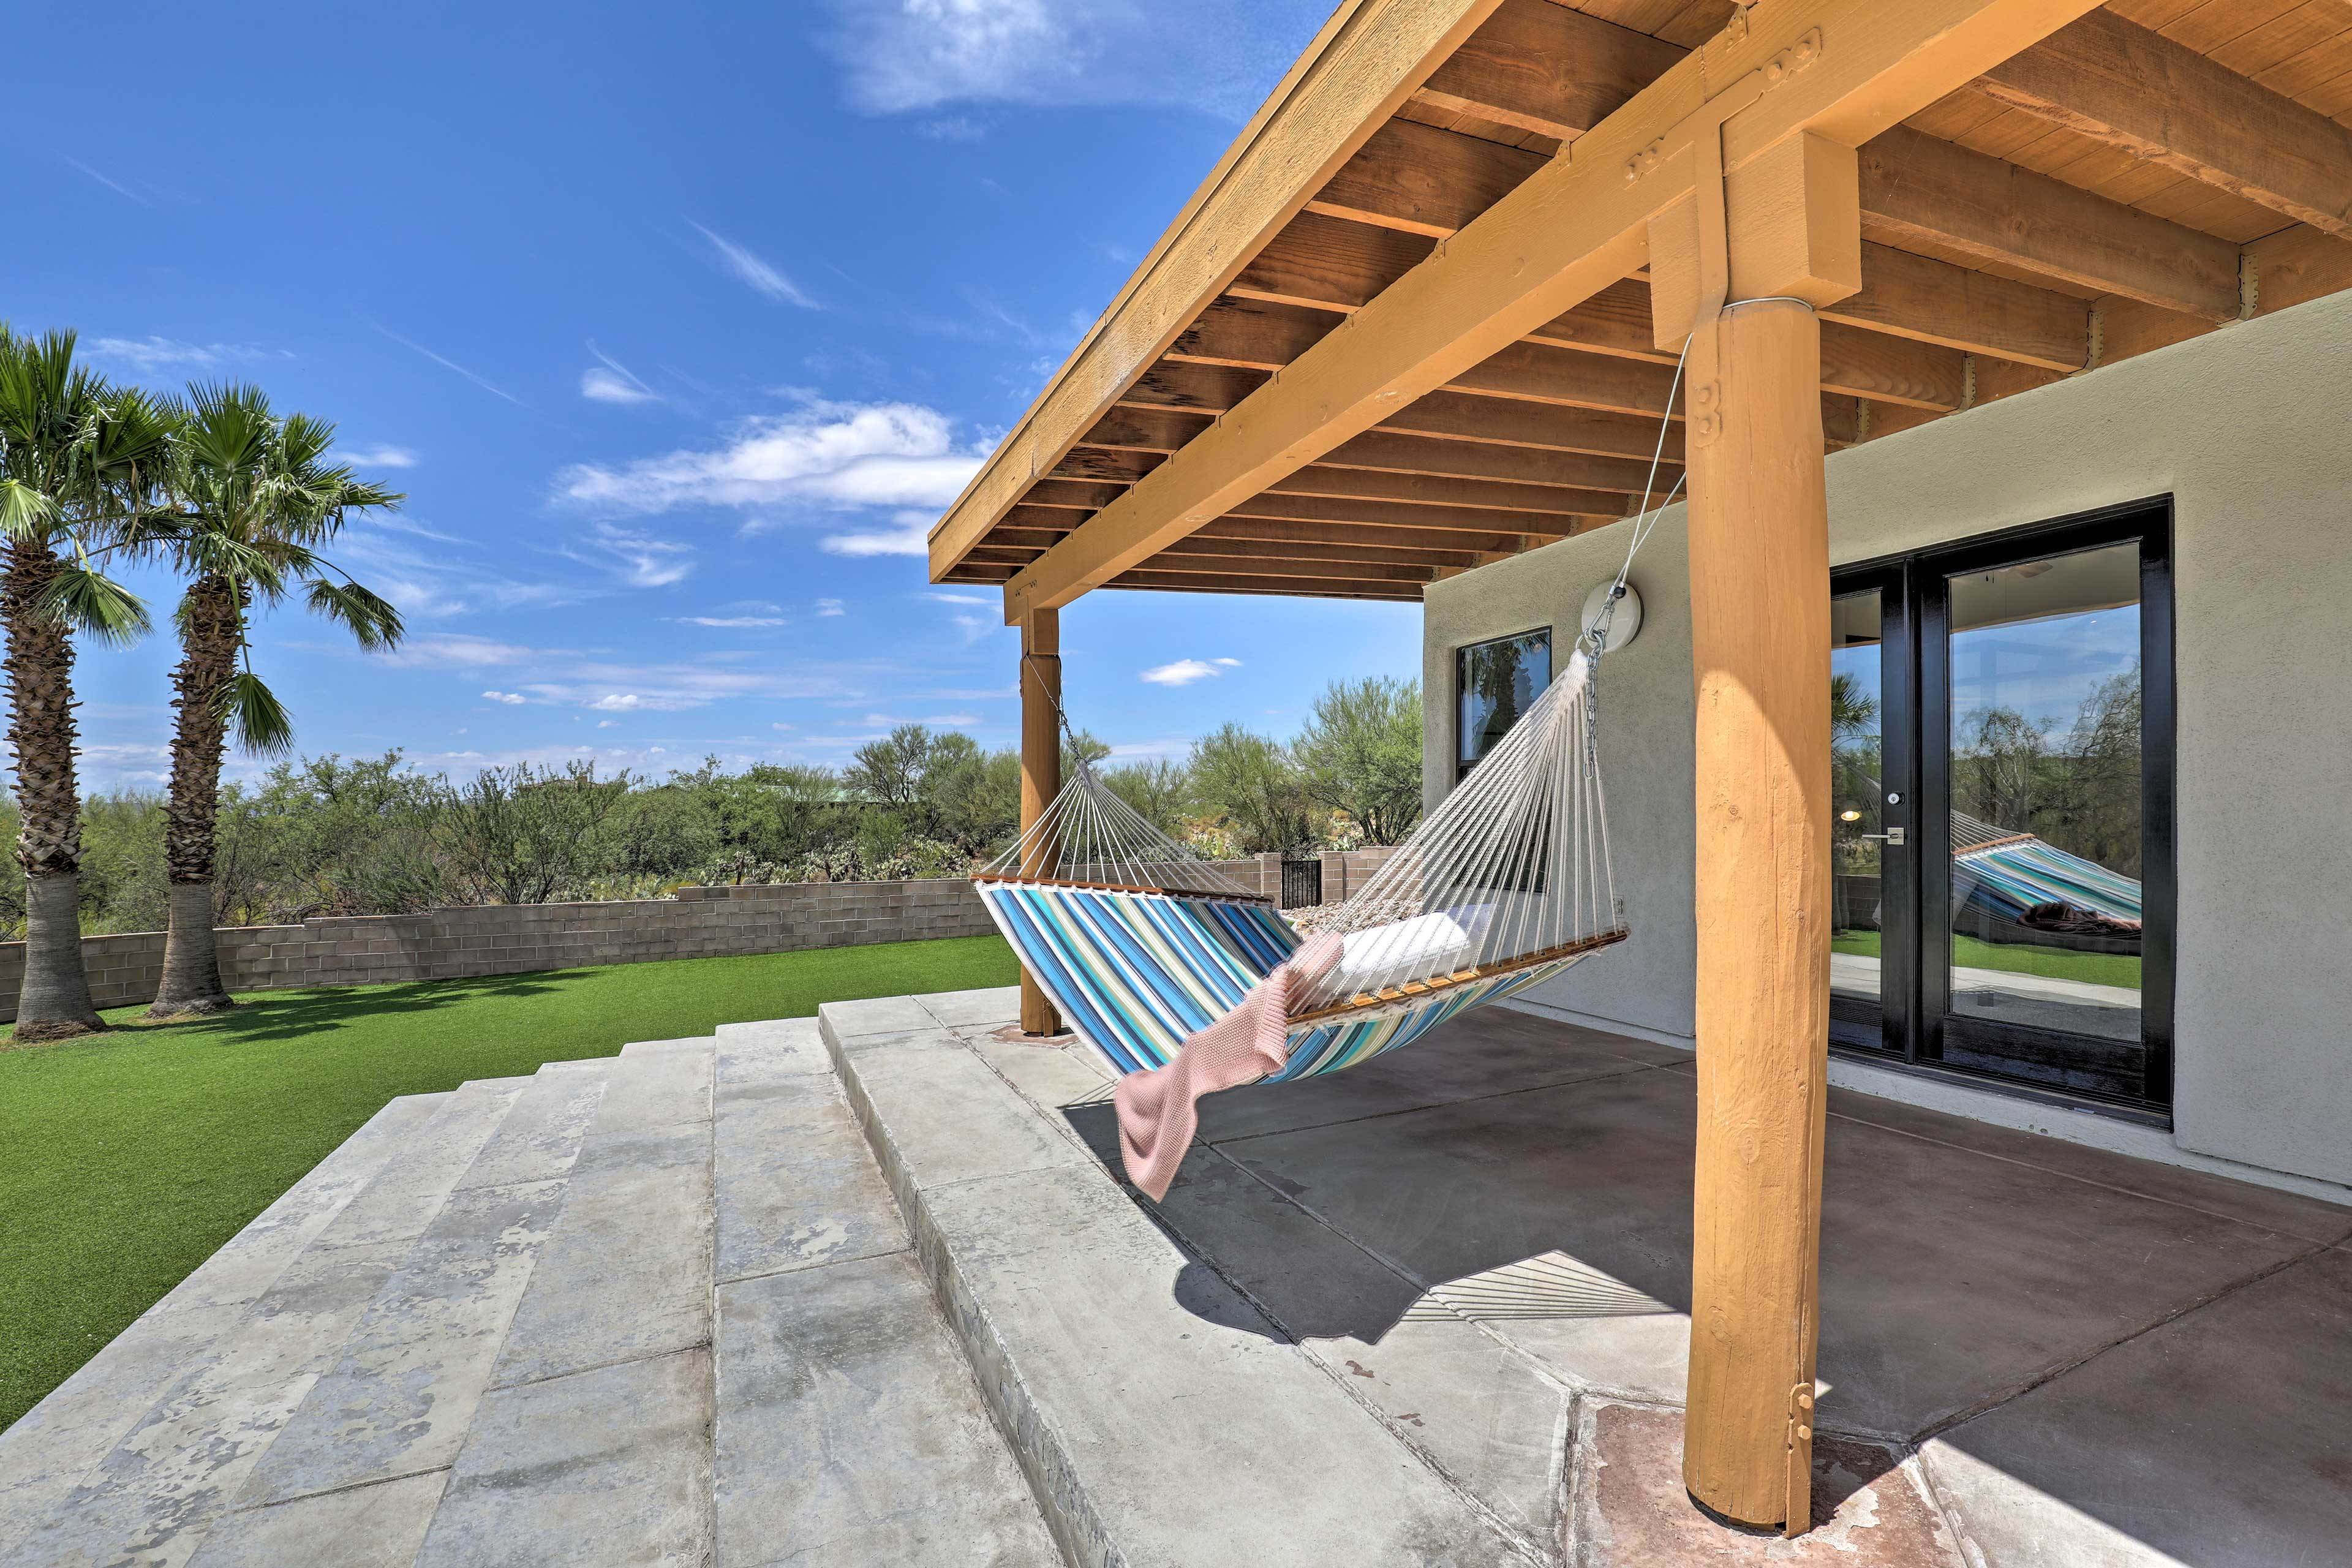 Relax after a day in the pool or lay in the hammock to get a tan.